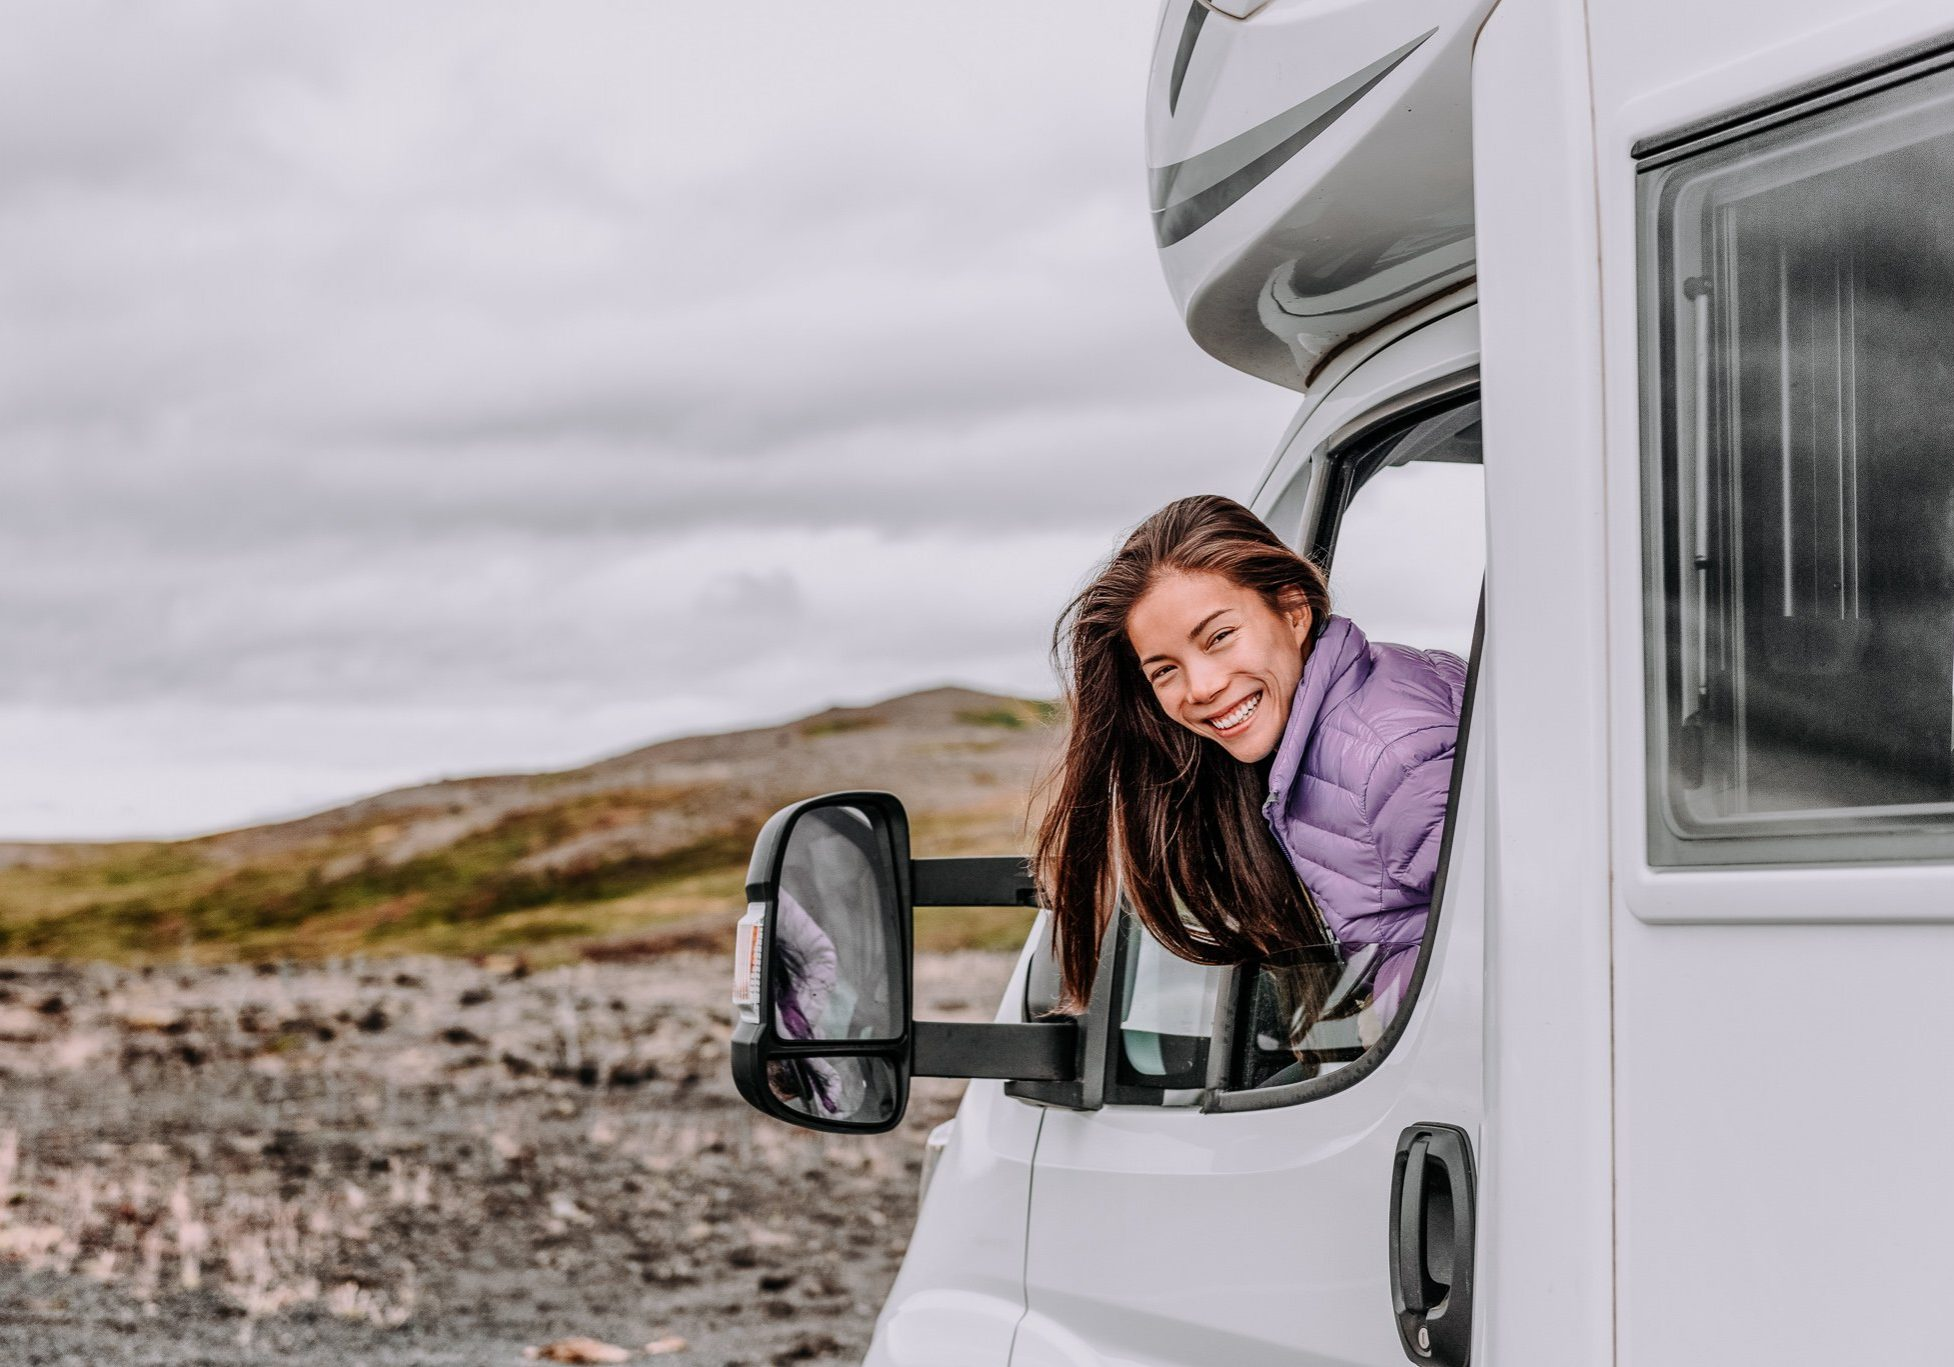 RV camper trailer travel woman driving motorhome camping van on Iceland road trip. Asian tourist driver smiling peeking out window of front seat